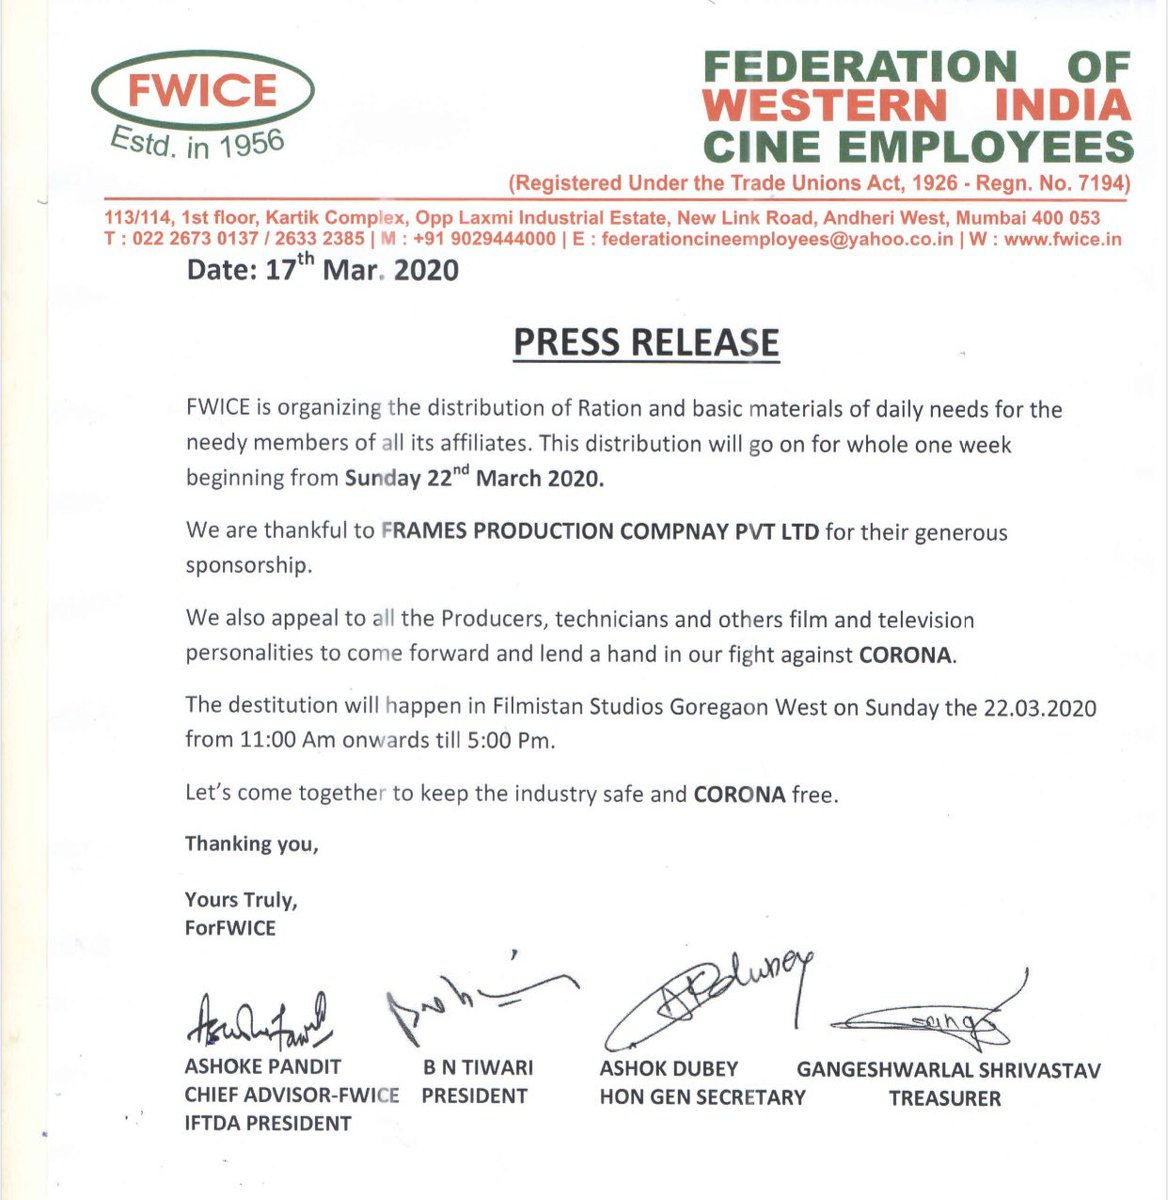 Dear Film makers,  FWICE is distributing ration and daily needs materials for needy members of  all it's affiliates. We request you to come together and lend a helping hand to the technicians and workers who are worst hit in this crisis...  #CoronaCrisis